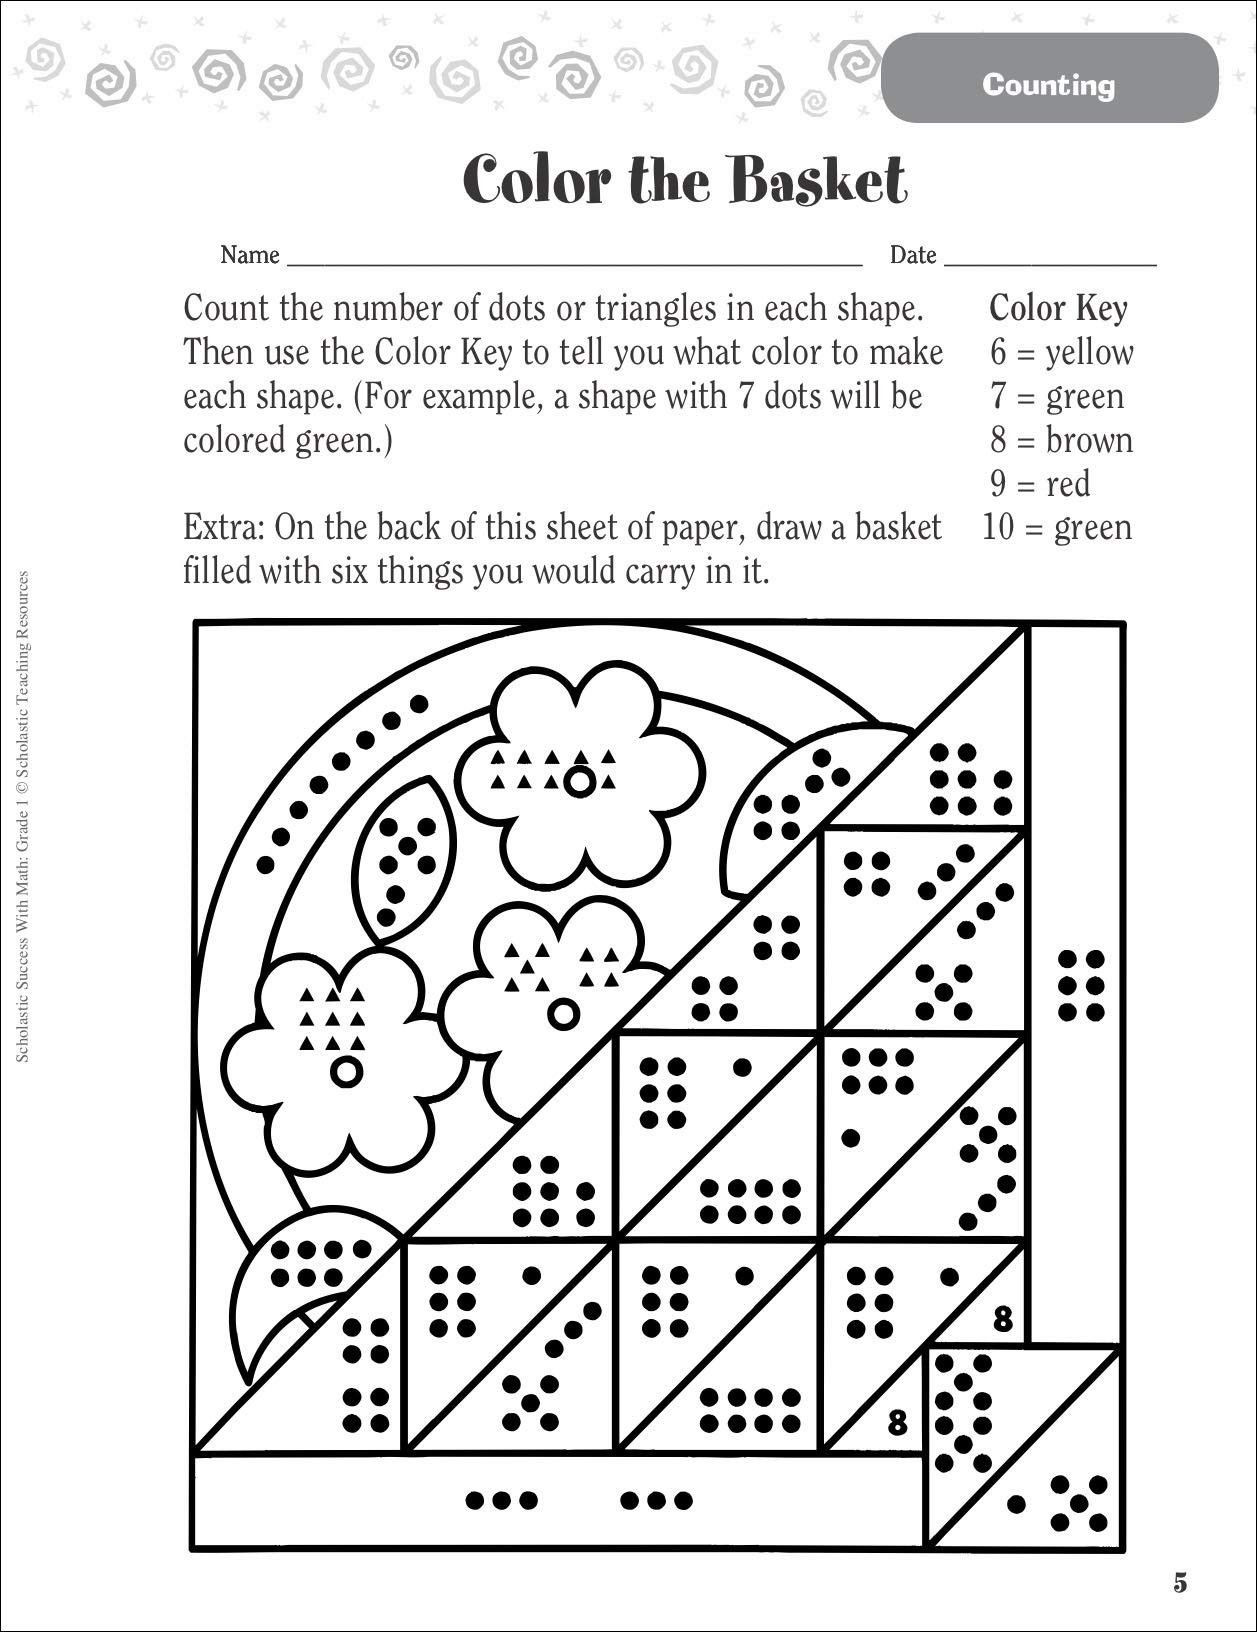 30 Matching Numbers To Quantities Worksheet